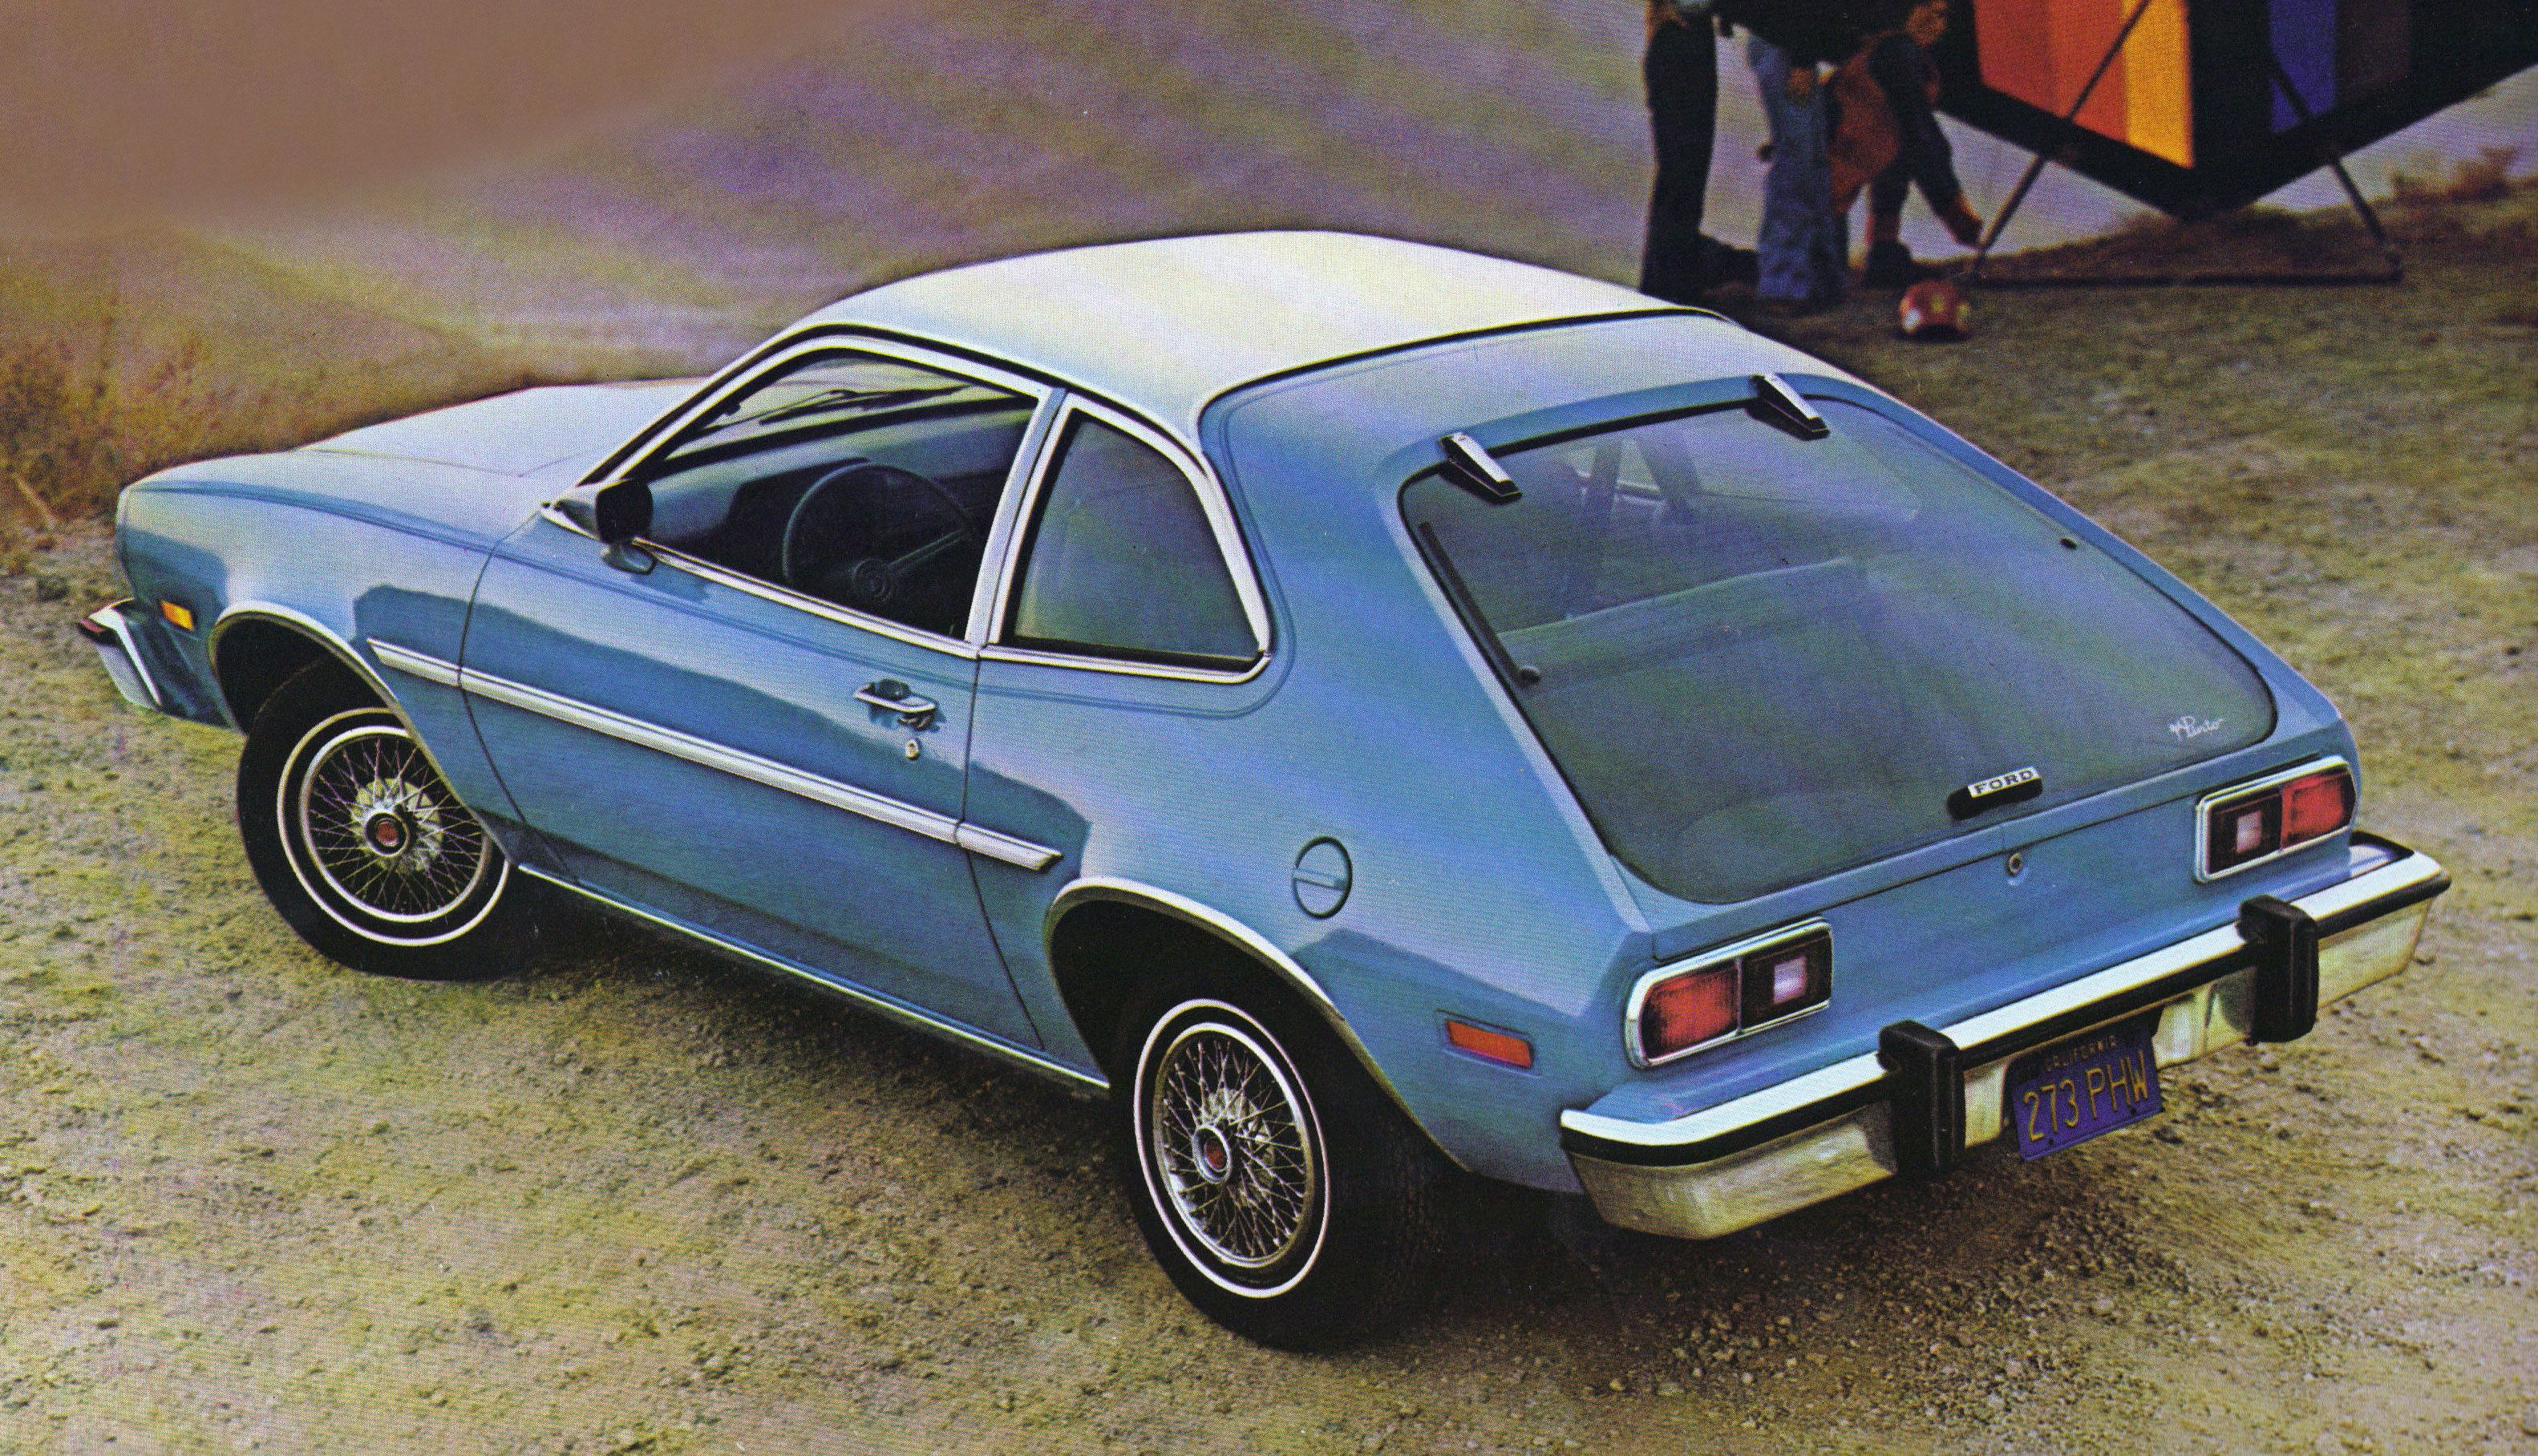 1979 ford pinto 3 door runabout hatchback rare and classic photo car pictures